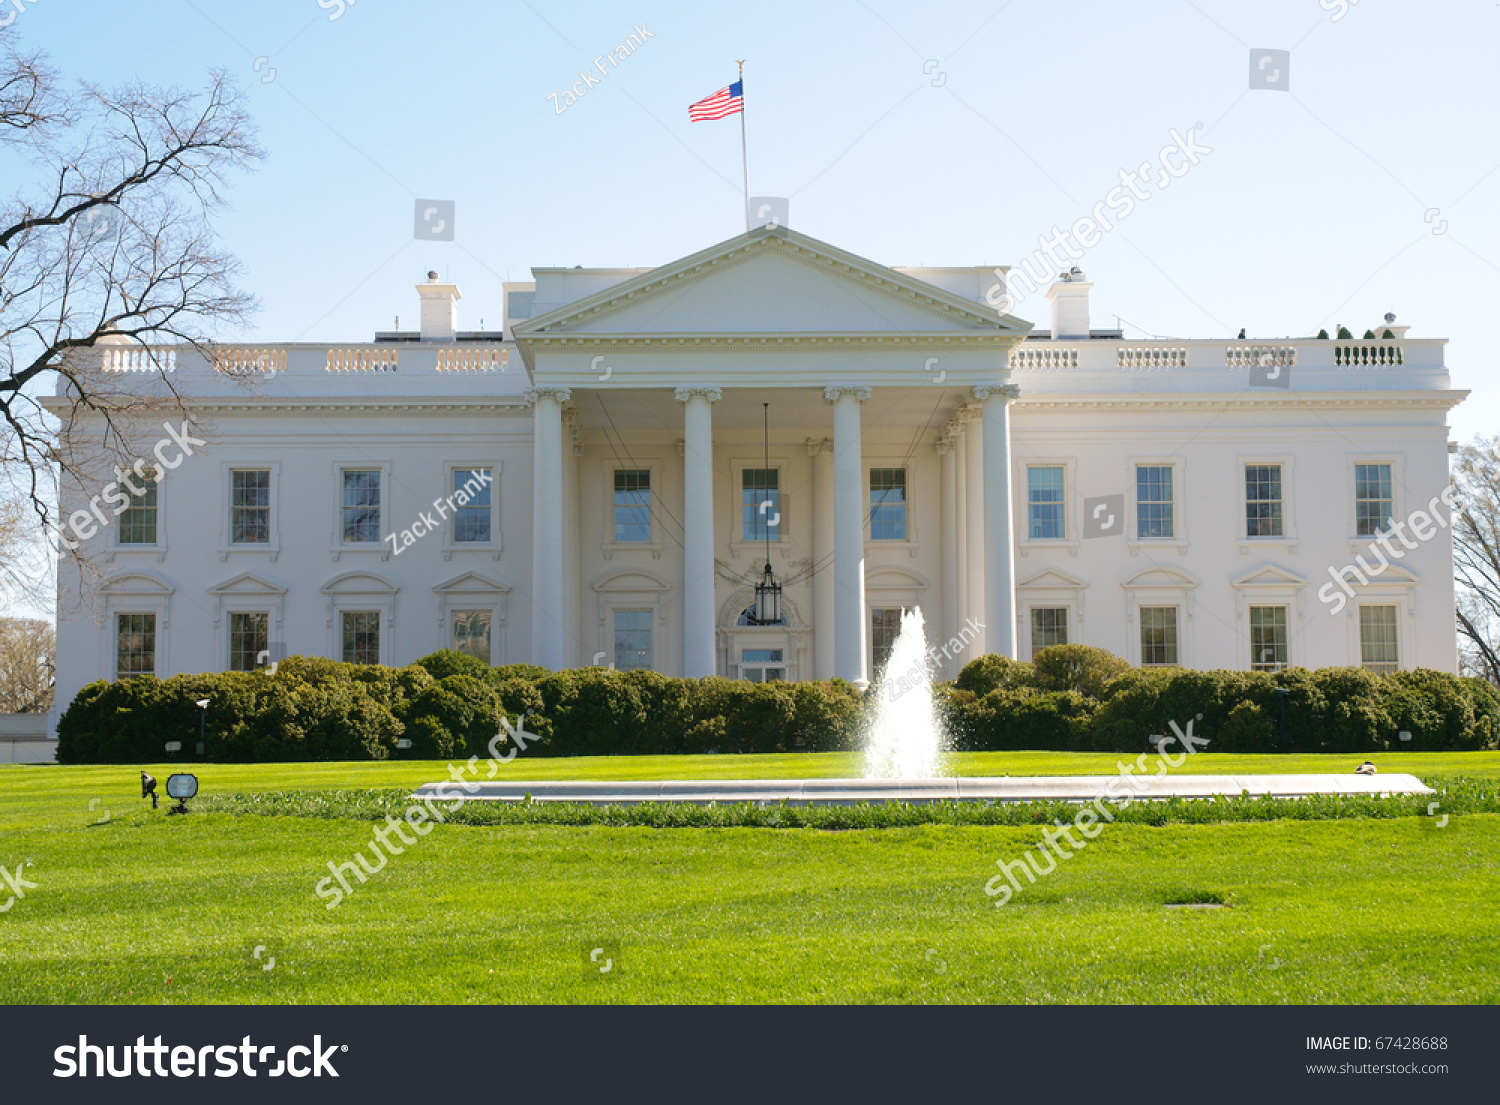 White house front exterior and fountain stock photo for White house exterior